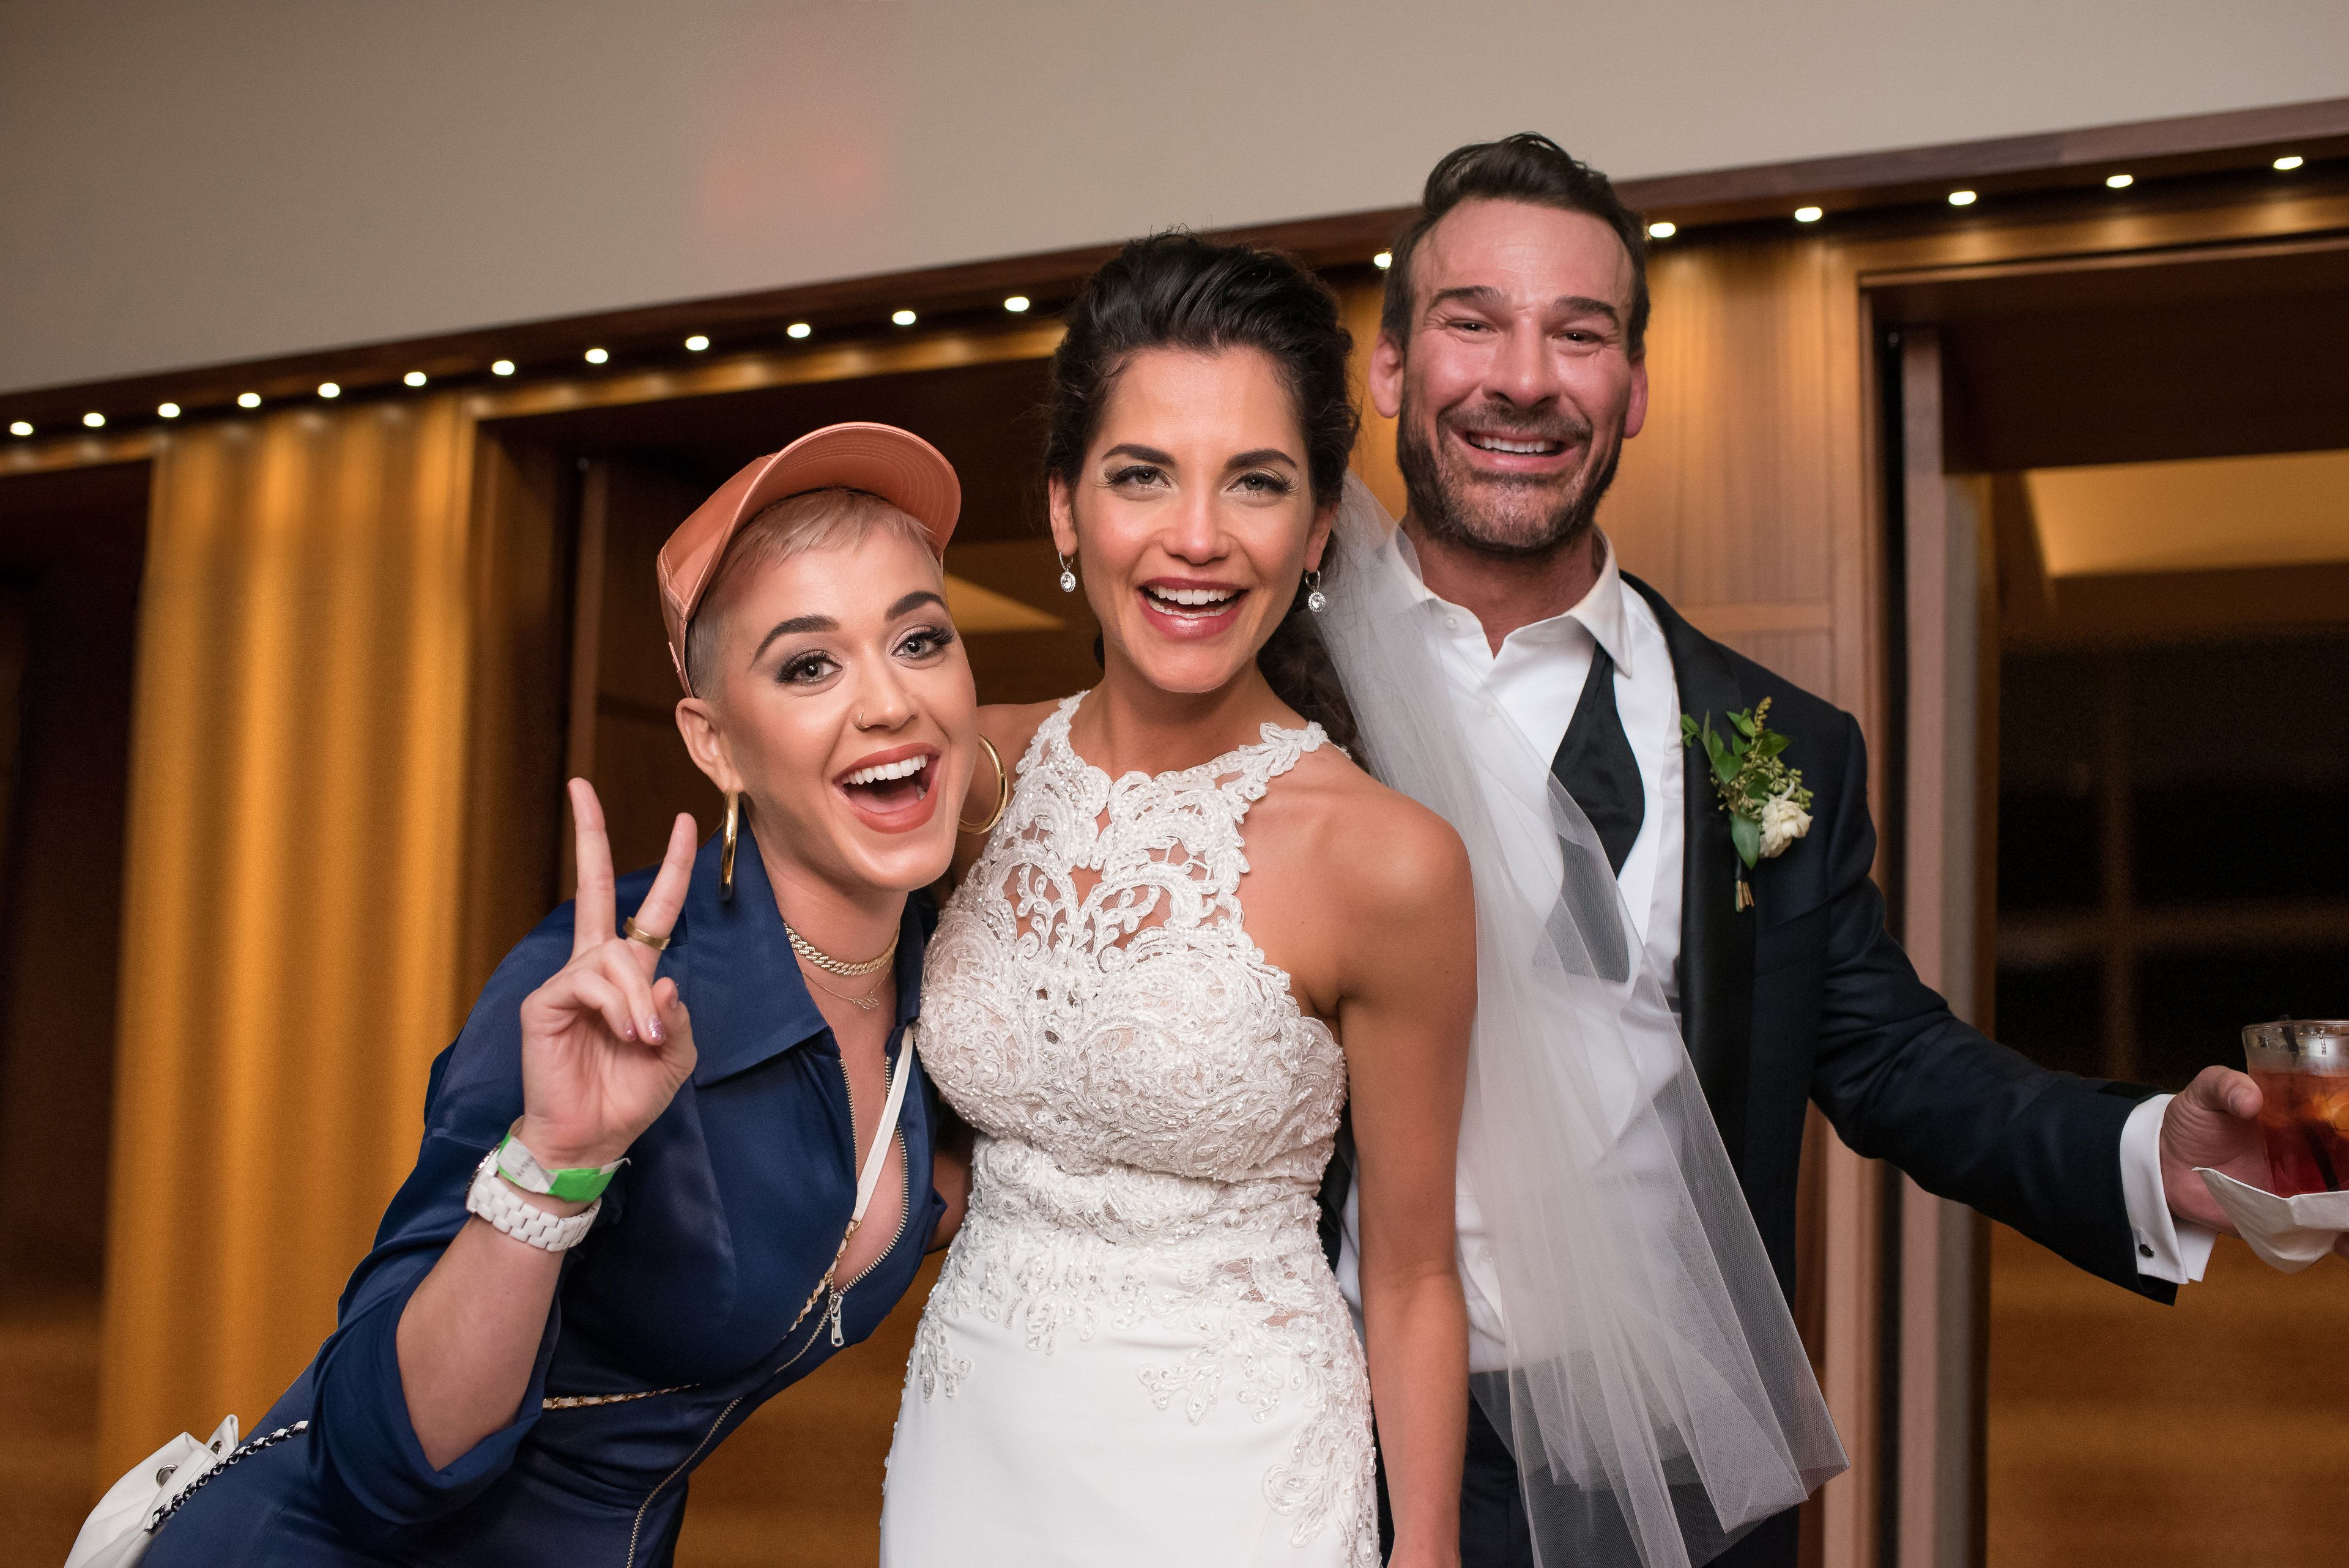 The bride and groom pose with Katy Perry herself.